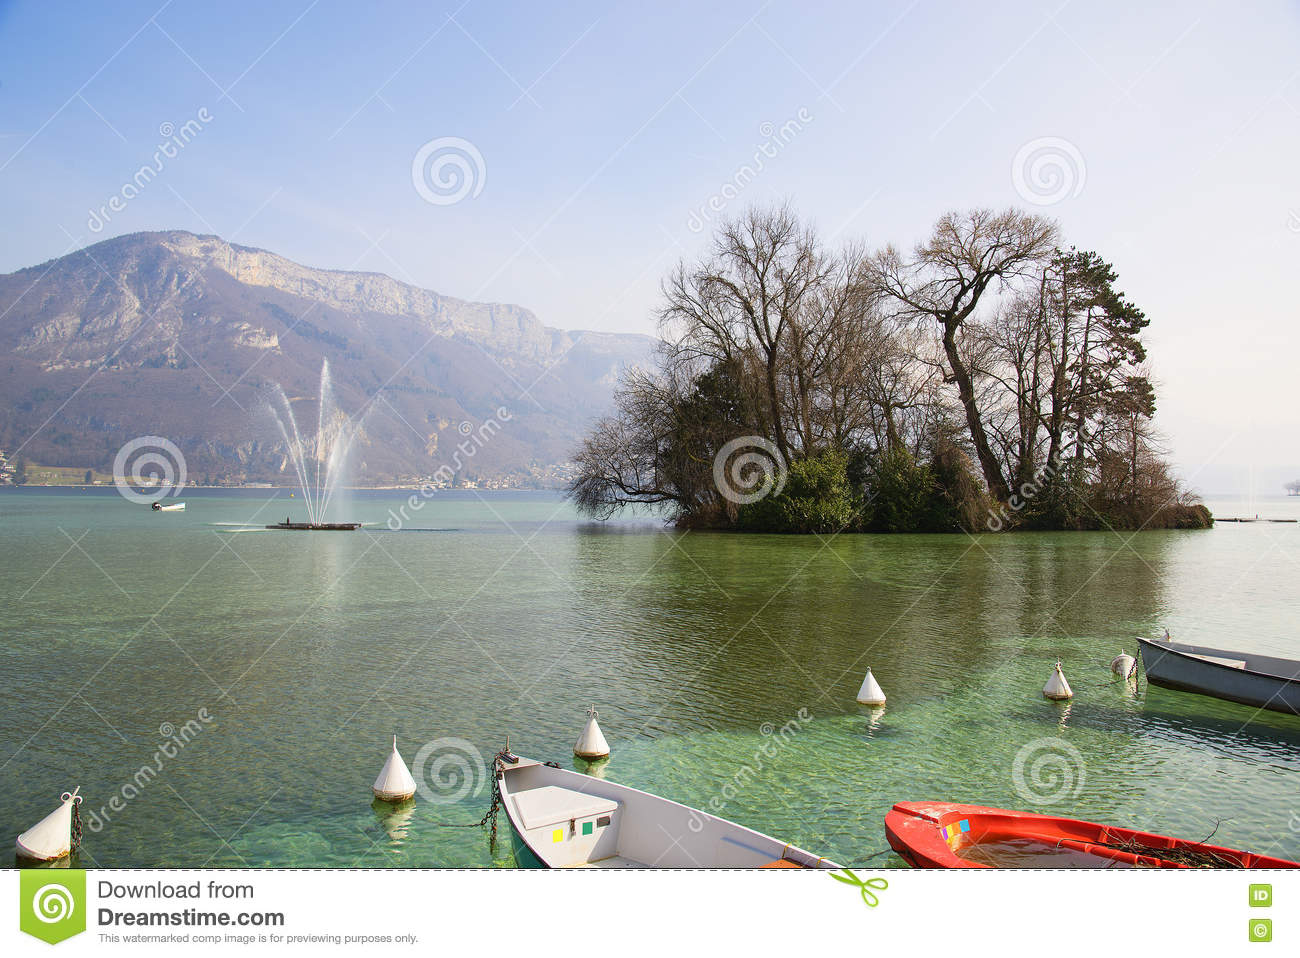 Lake Annecy clipart #6, Download drawings